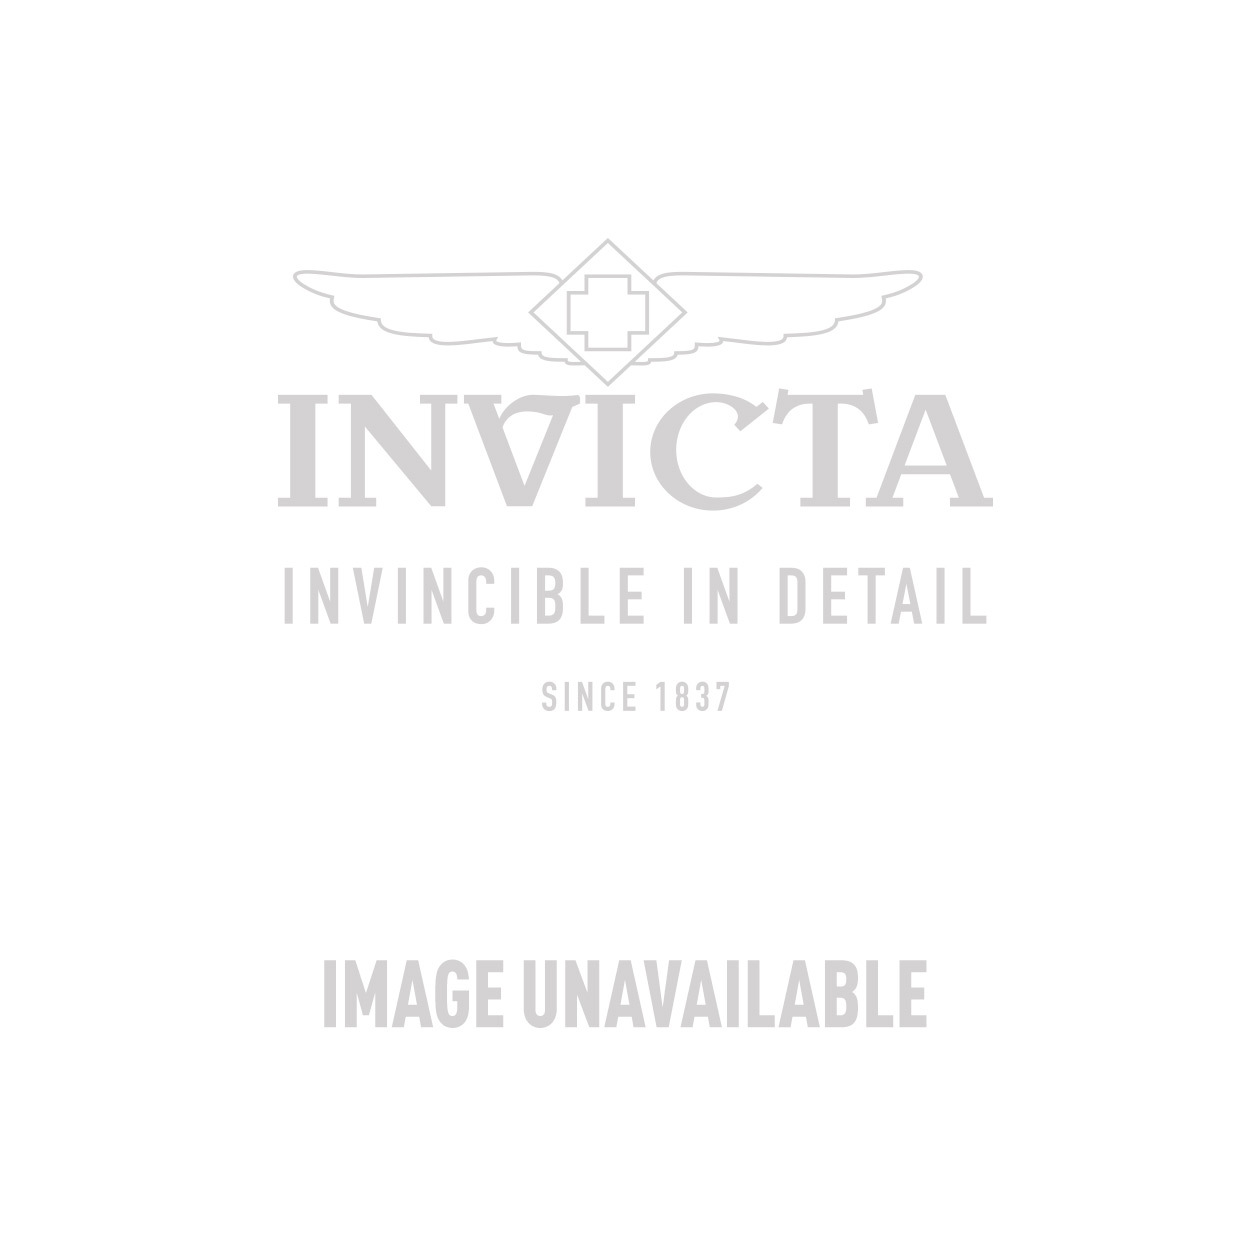 Invicta Reserve  Quartz Watch - Stainless Steel case with Black tone Leather band - Model 1725